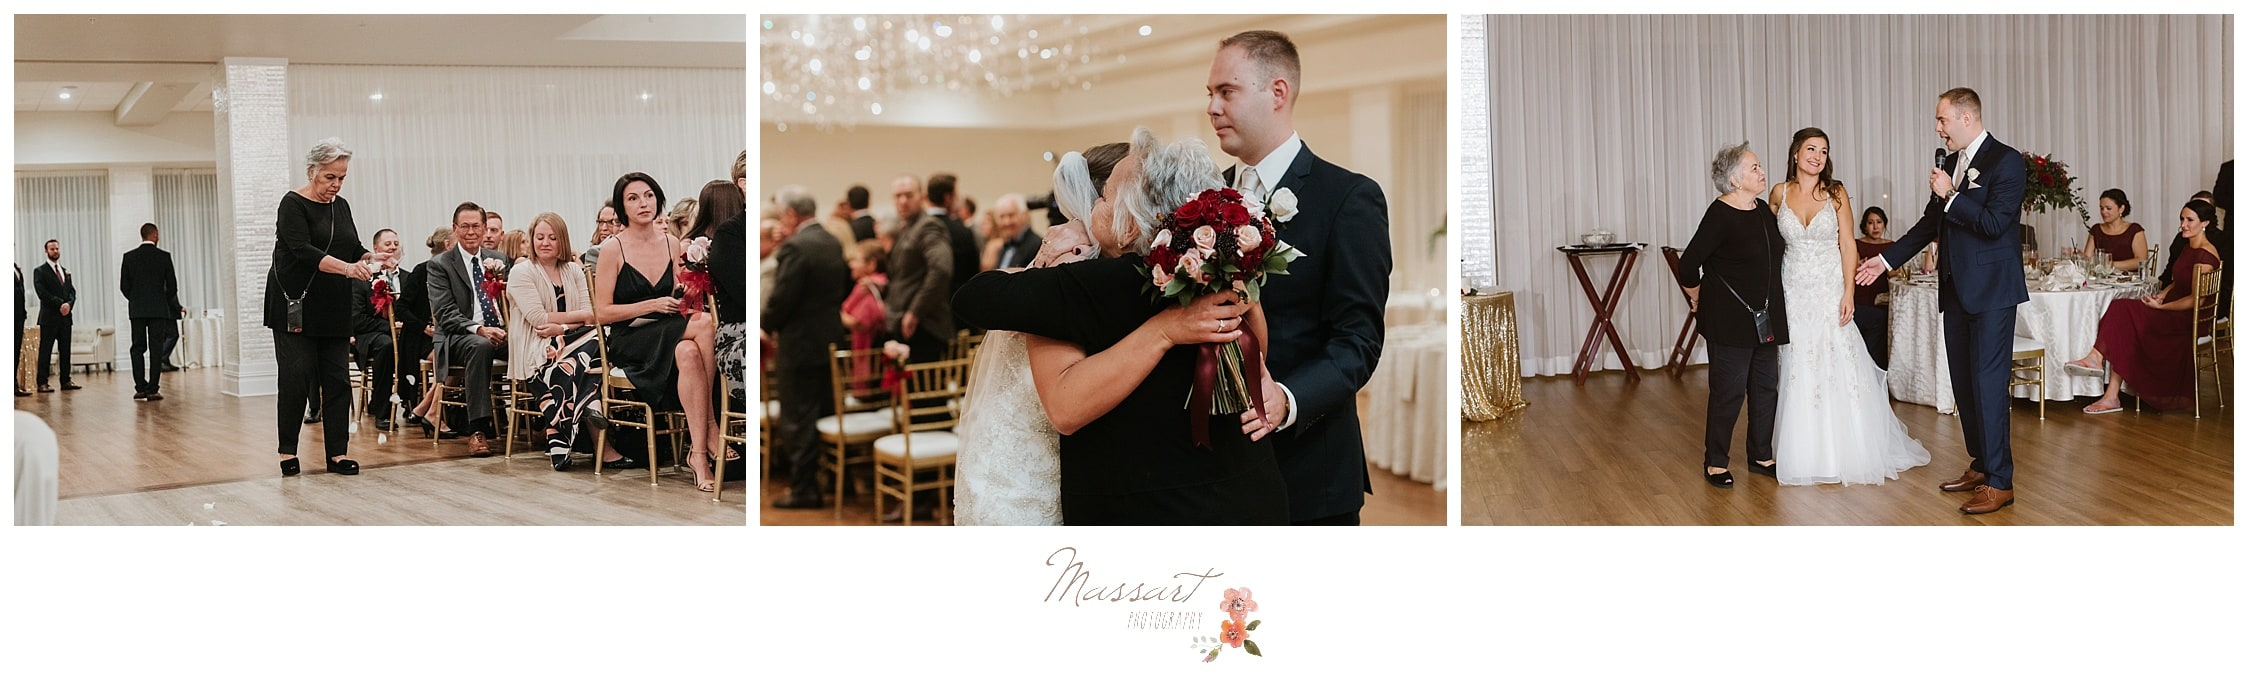 Bride and groom give their family hugs and kisses after their wedding reception photographed by Massart Photography Rhode Island